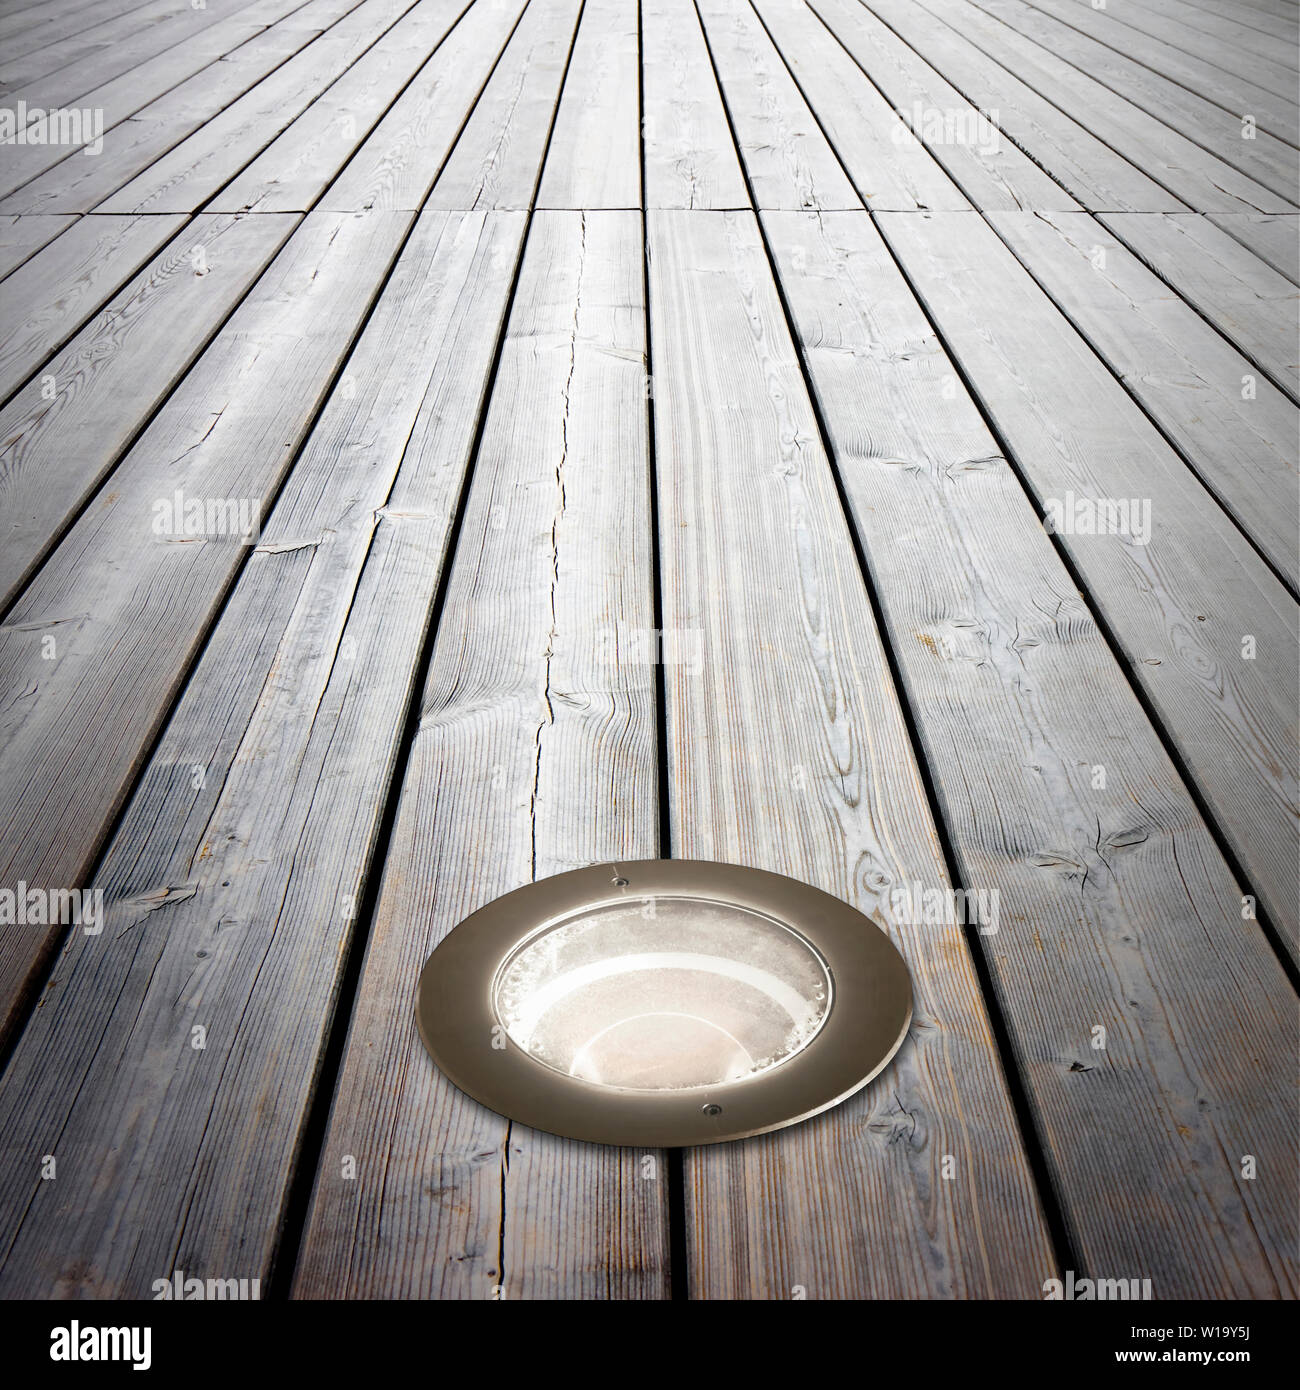 Recessed floor lamp on old wooden floor - image with copy space - Stock Image